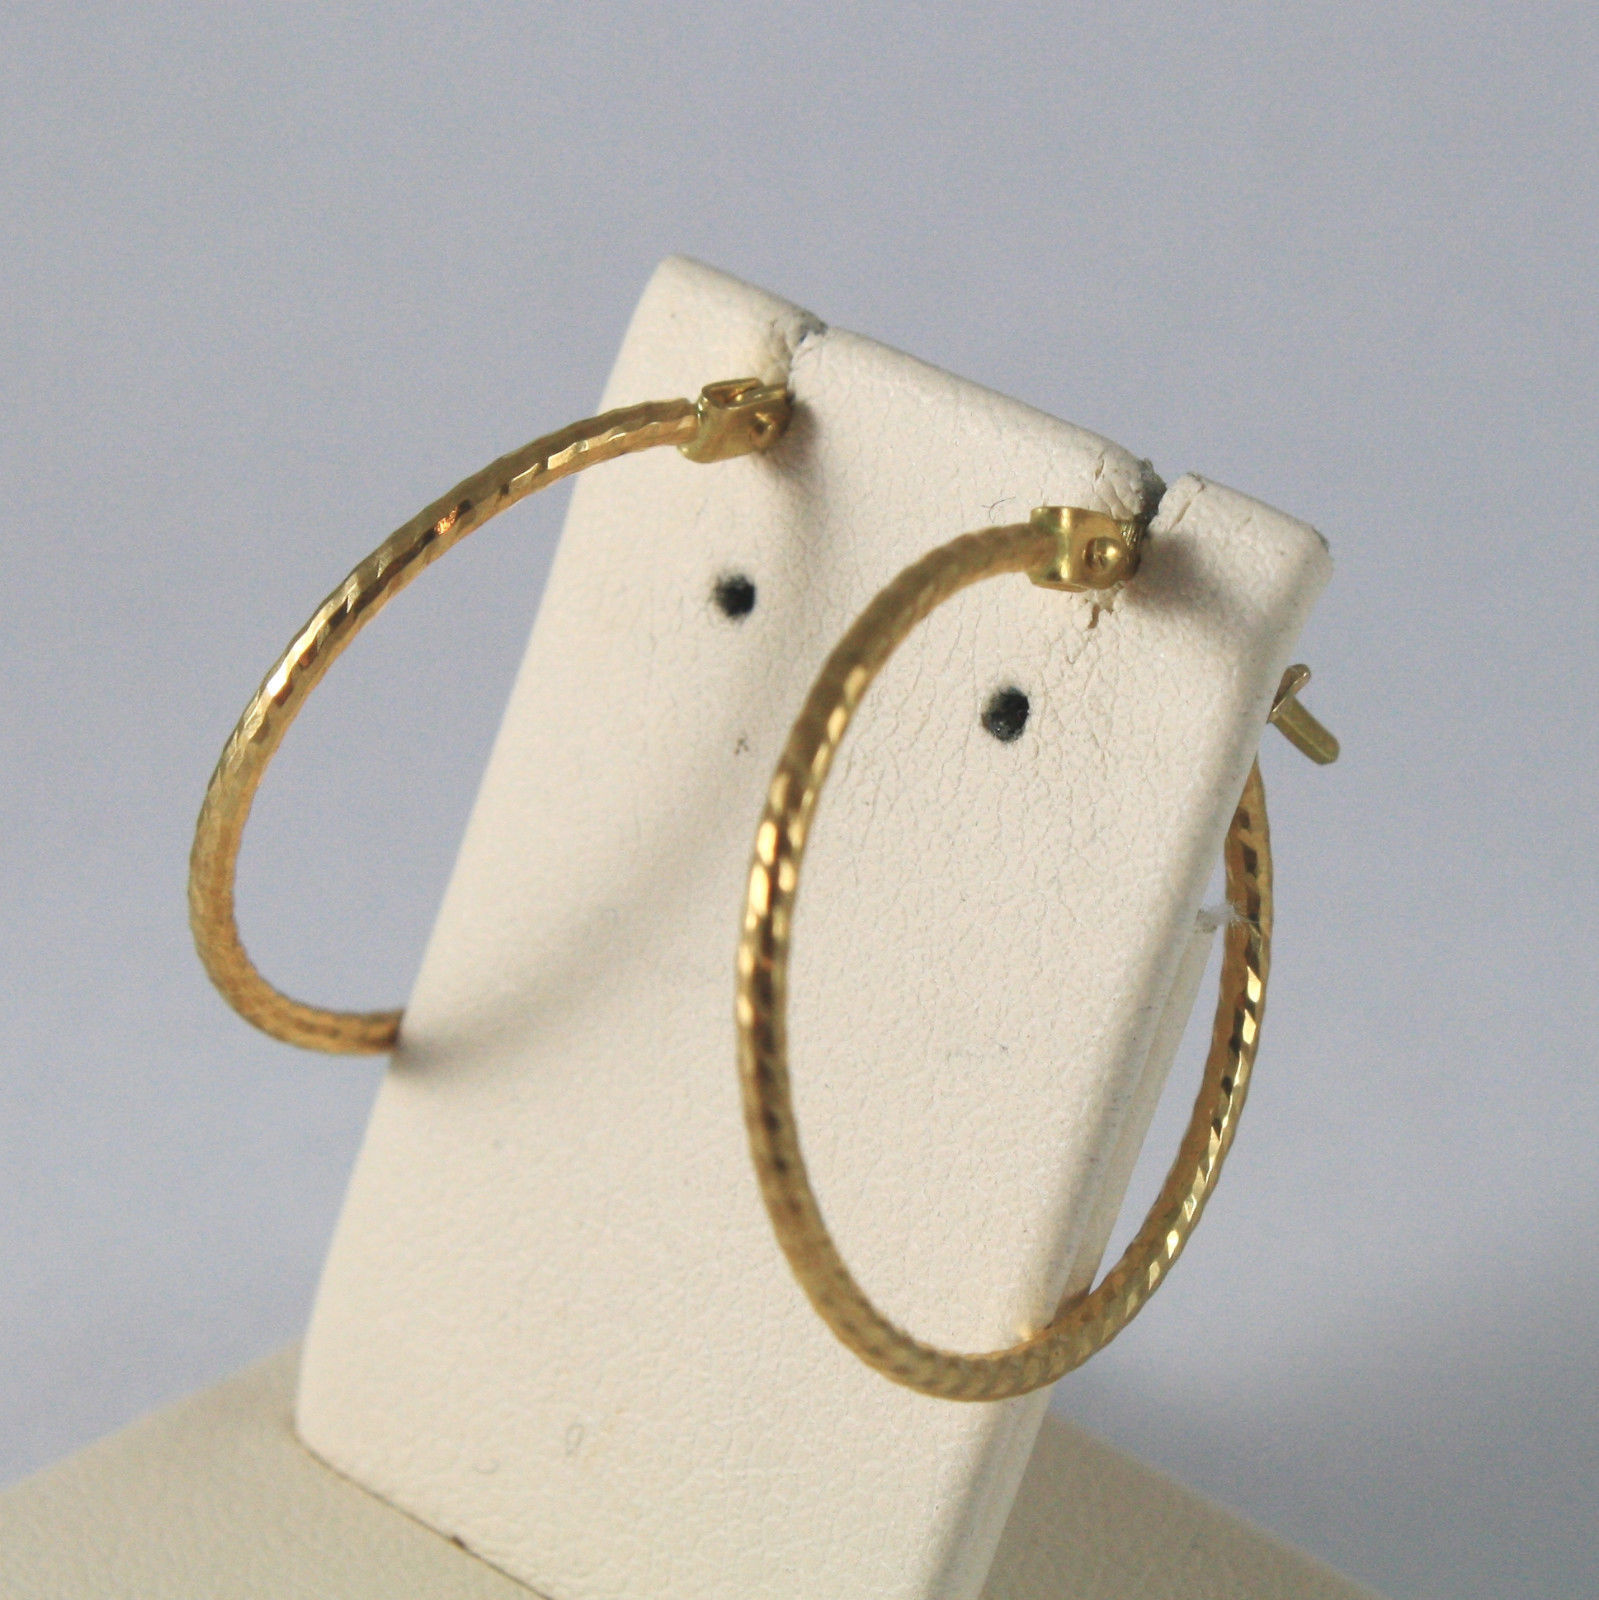 SOLID 18KT. YELLOW GOLD CIRCLE, WORKED EARRINGS, DIAMETER 0,91 IN,MADE IN ITALY.